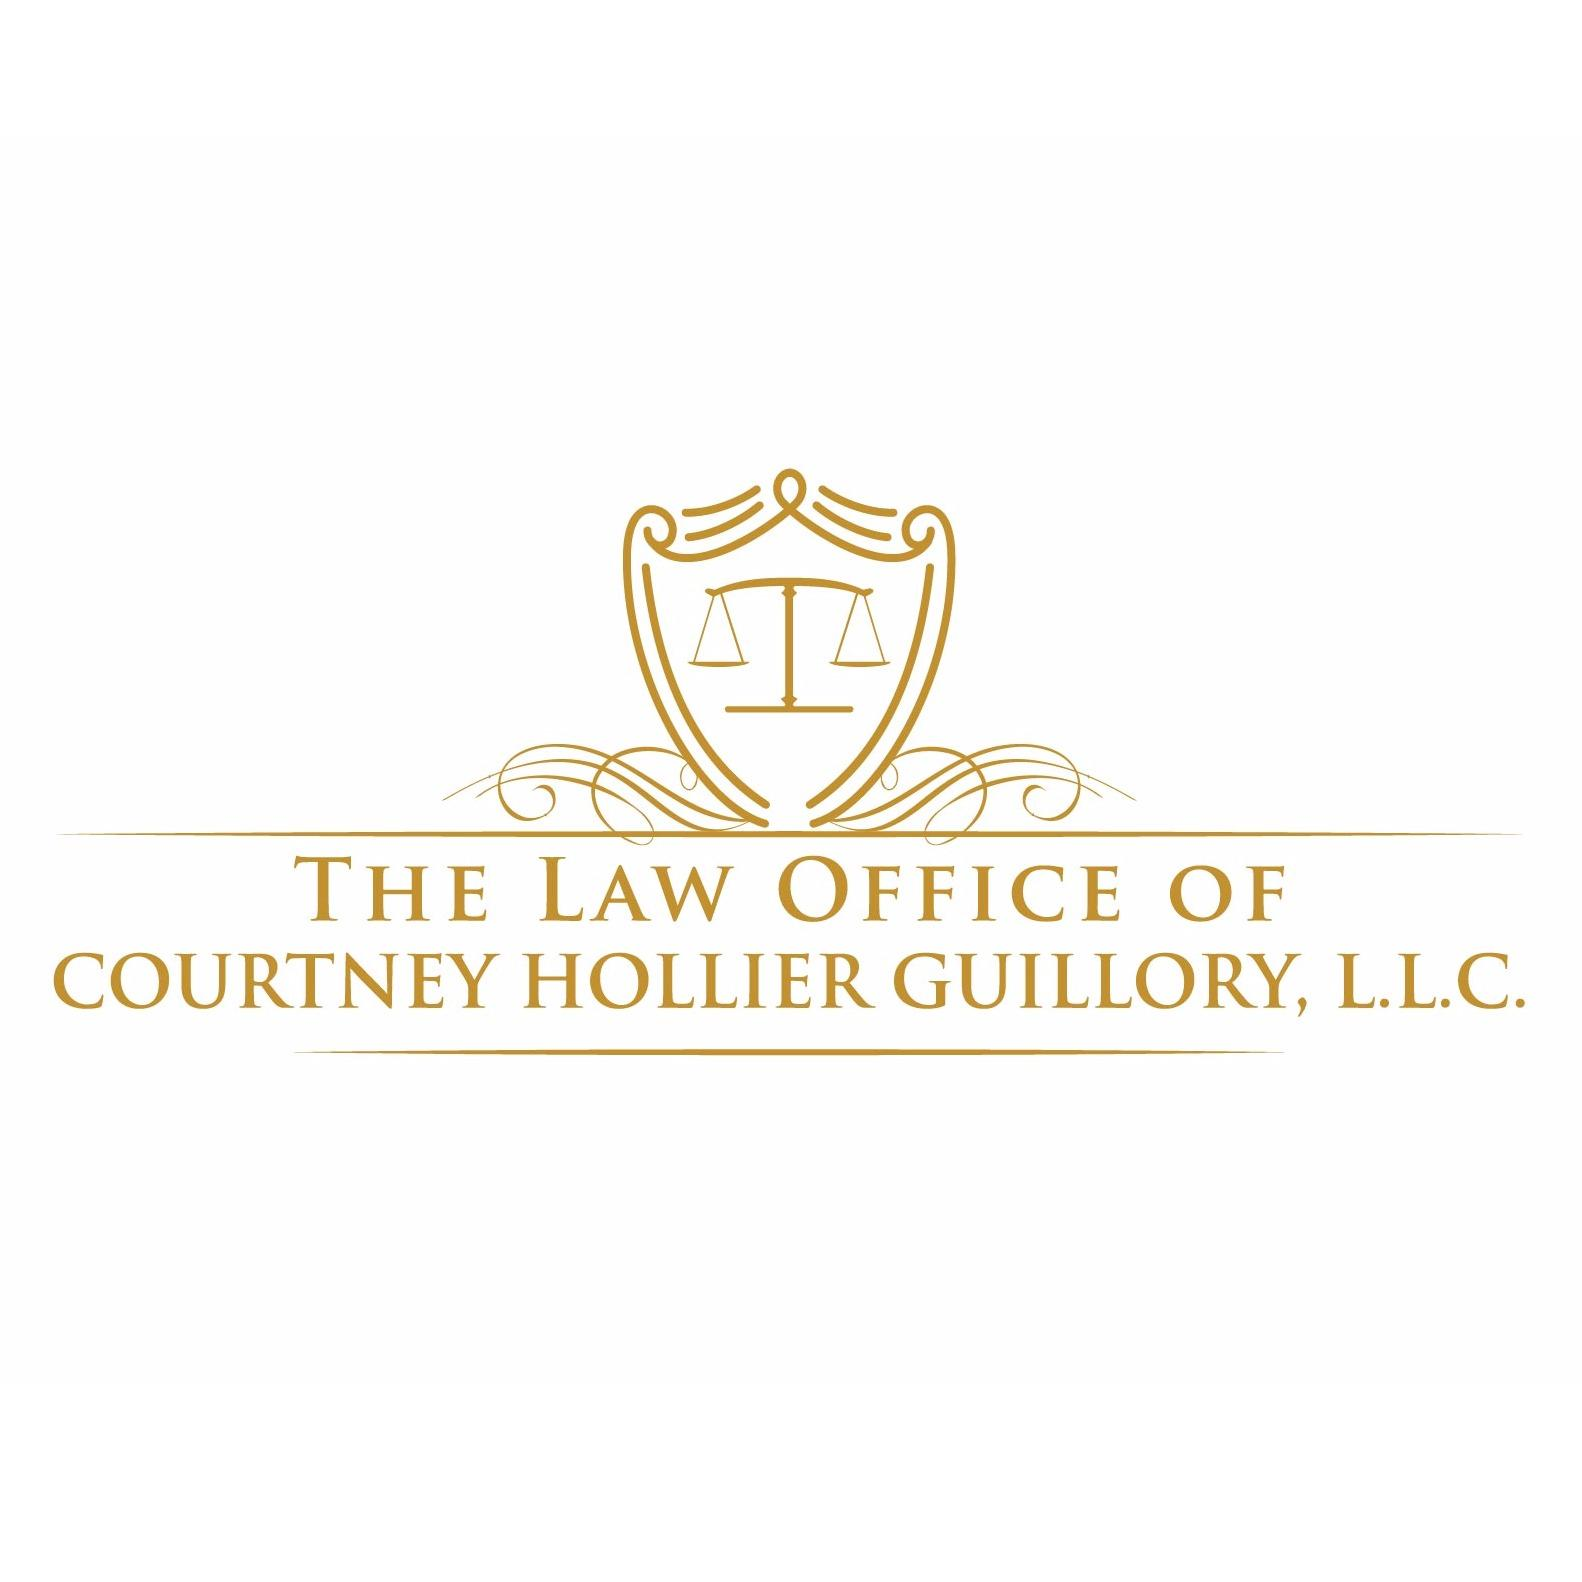 The Law Office of Courtney Hollier Guillory, LLC